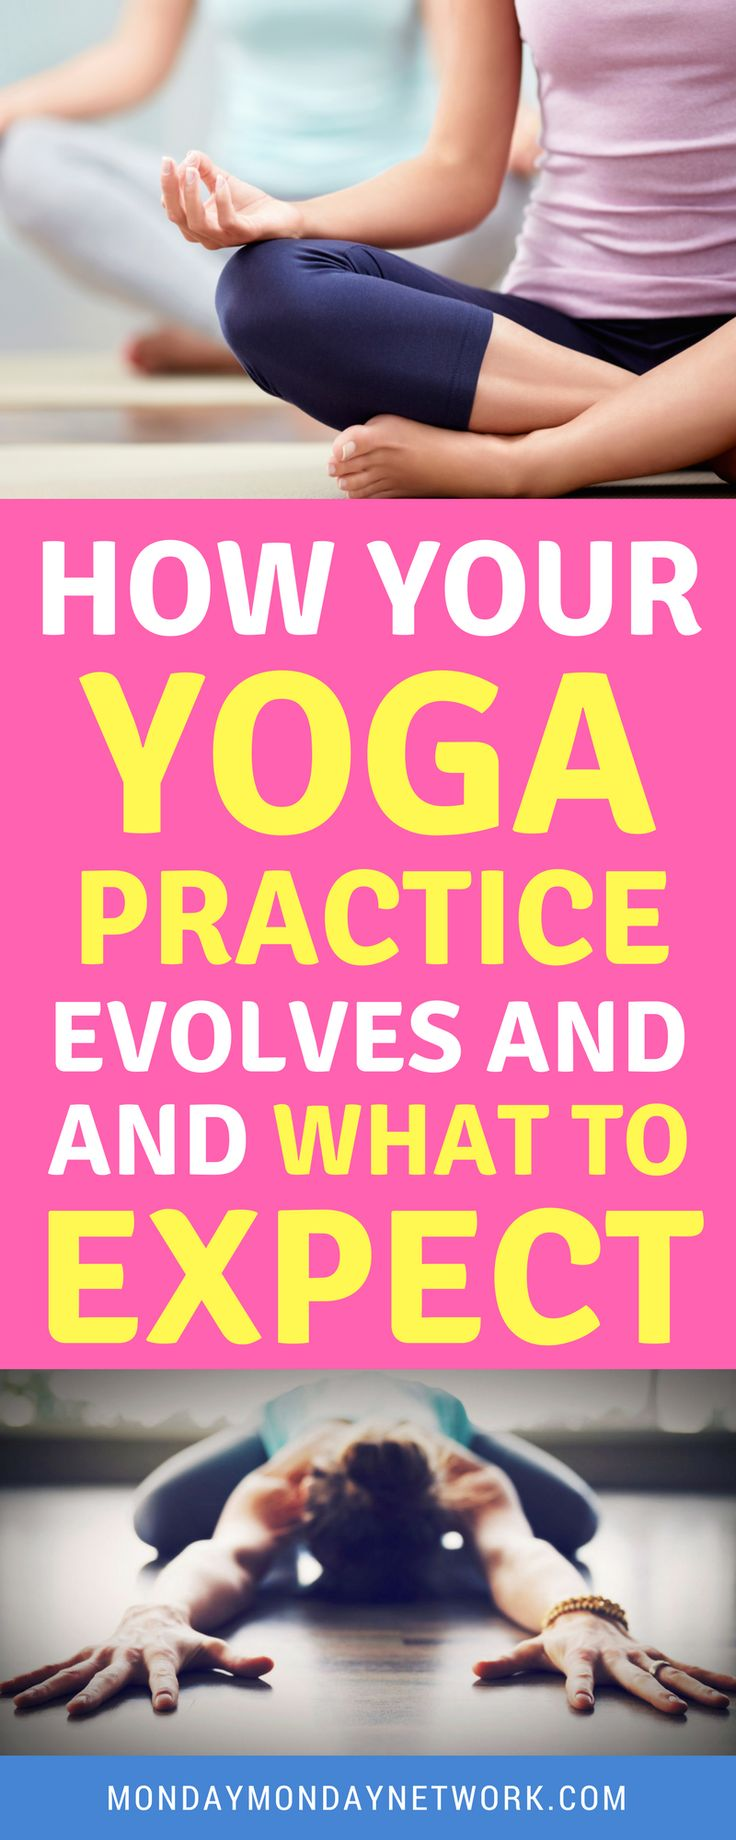 Yoga takes time for the body to embrace postures and for the benefits to be full...